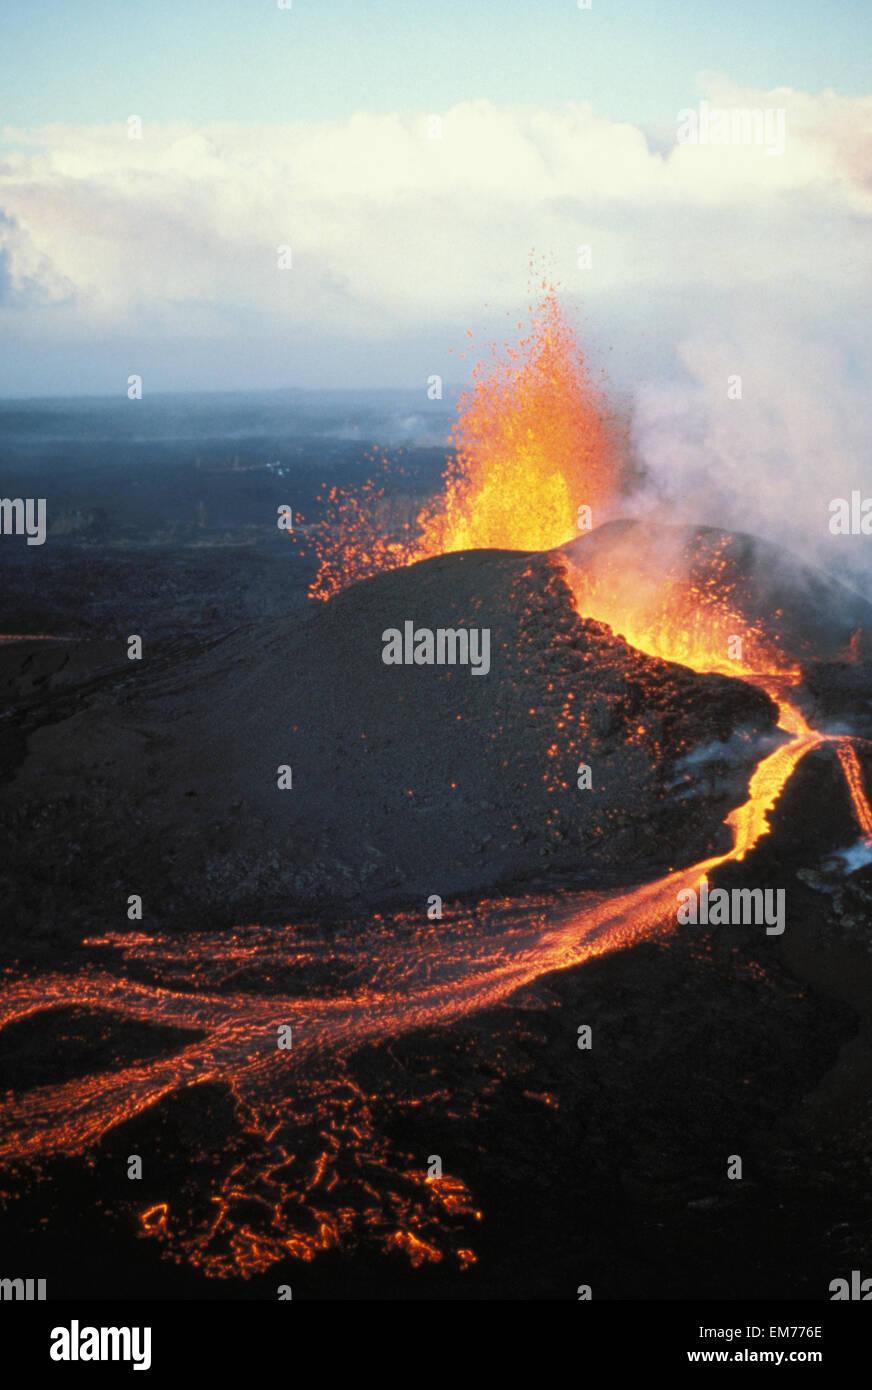 Hawaii, Big Island, Hawaii Volcanoes National Park, Kilauea, Pu'u O'o Eruption, Fountaining Action - Stock Image